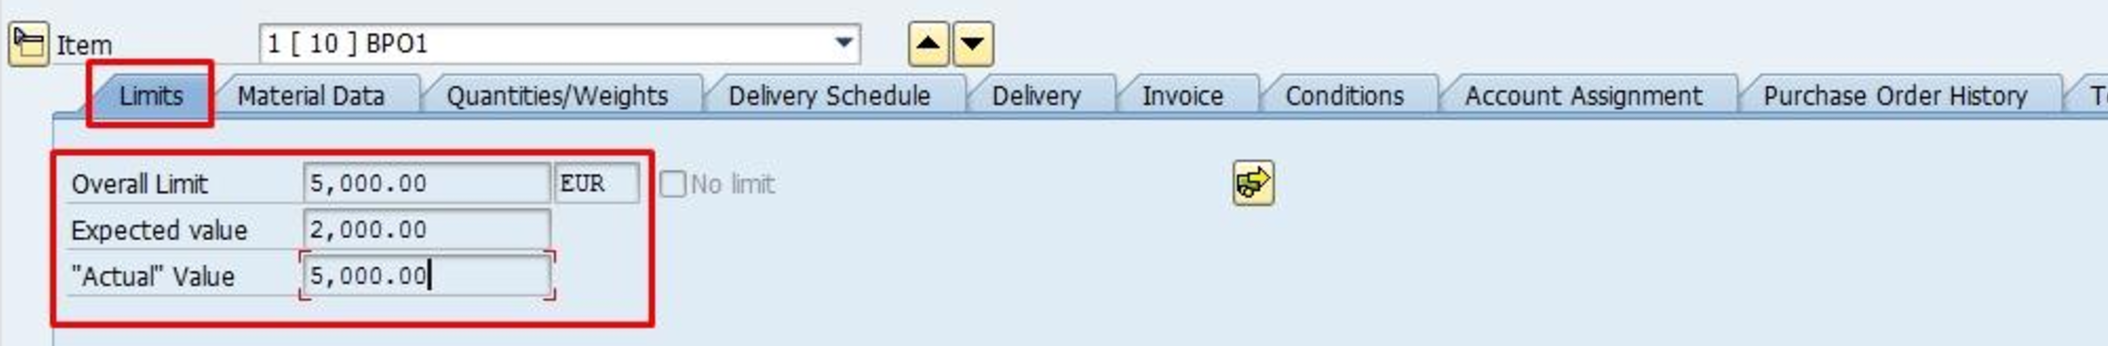 Blanket Purchase Order Limits Item Details